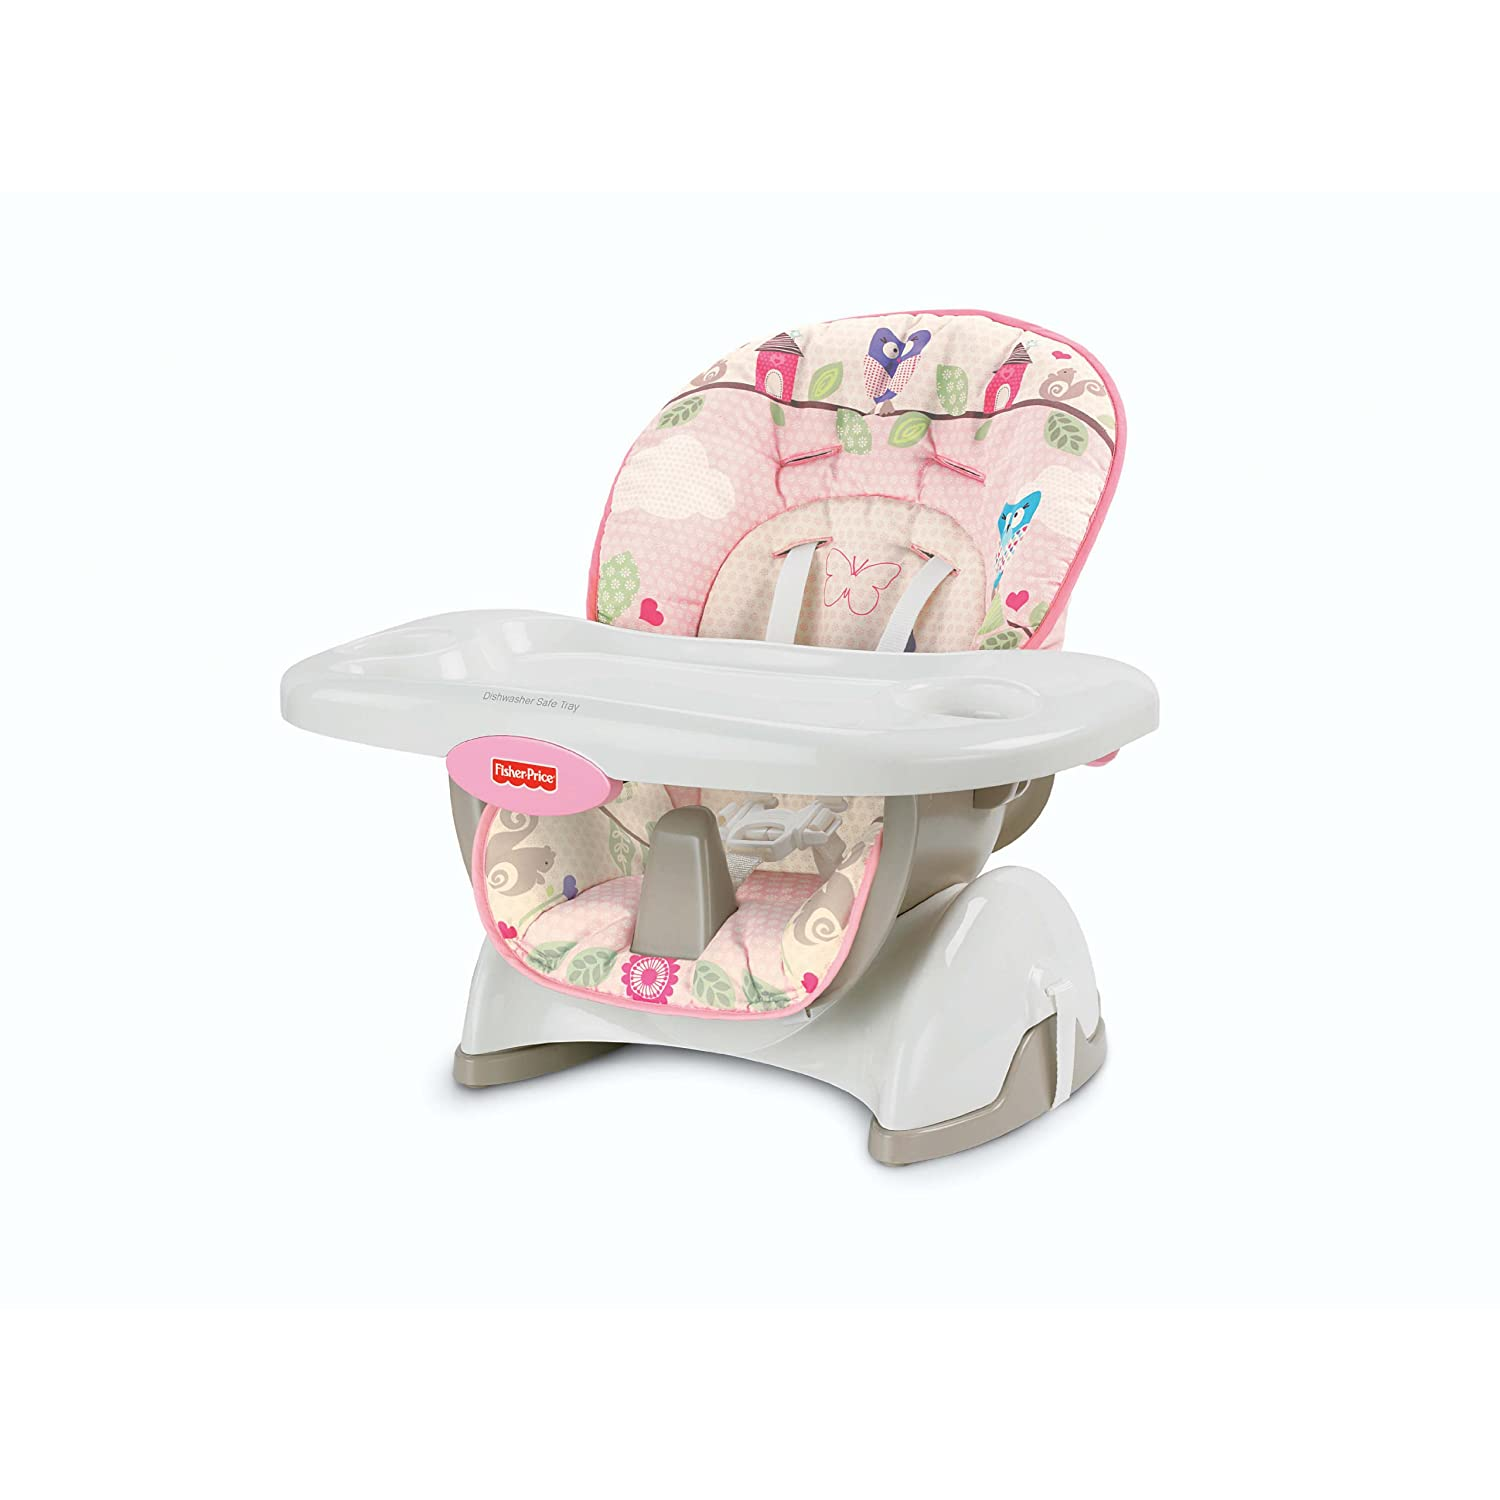 Fisher price silla para comer modelo mariposa pink 2012 for Silla fisher price para comer